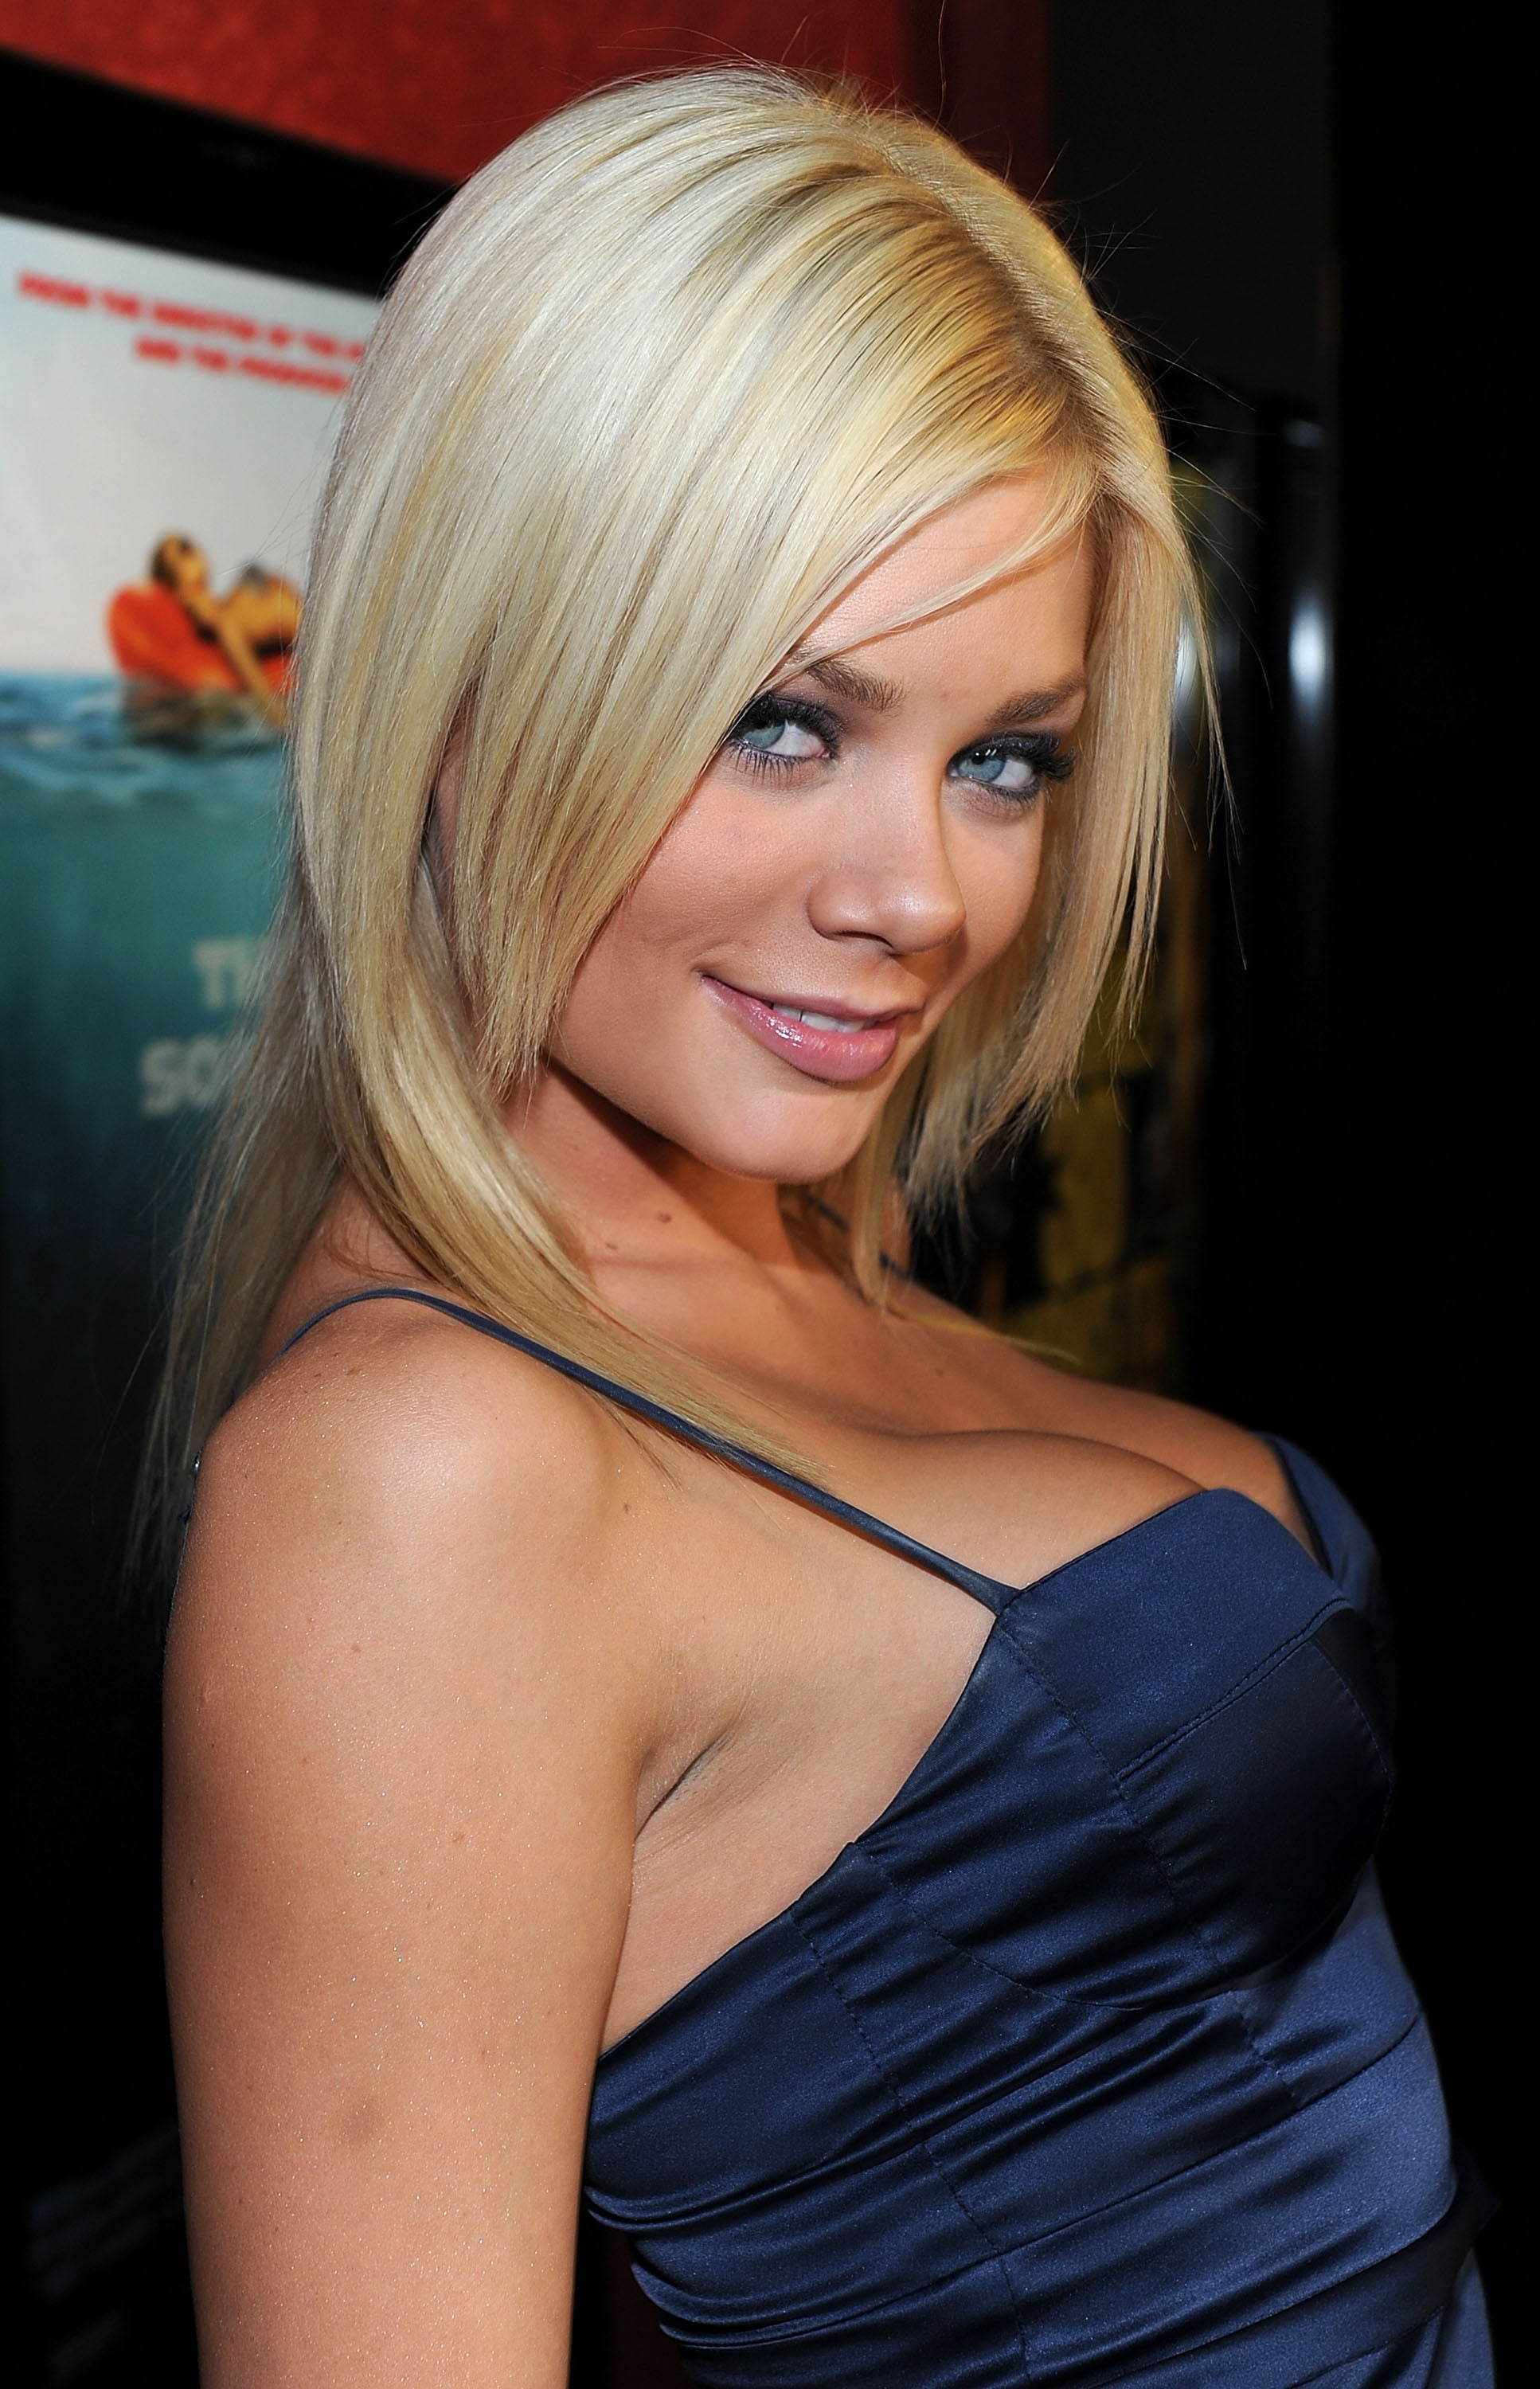 Riley steele porn pictures